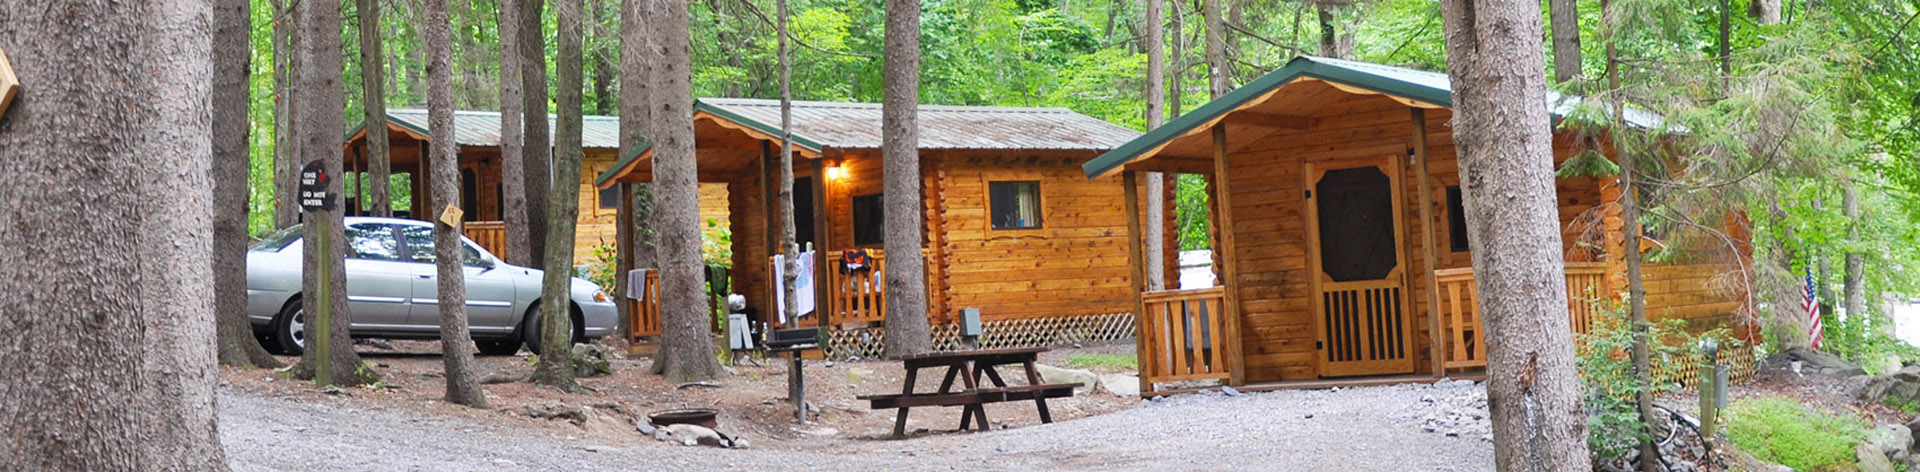 rentals rent cabins sale for getaway poconos cabin weekend